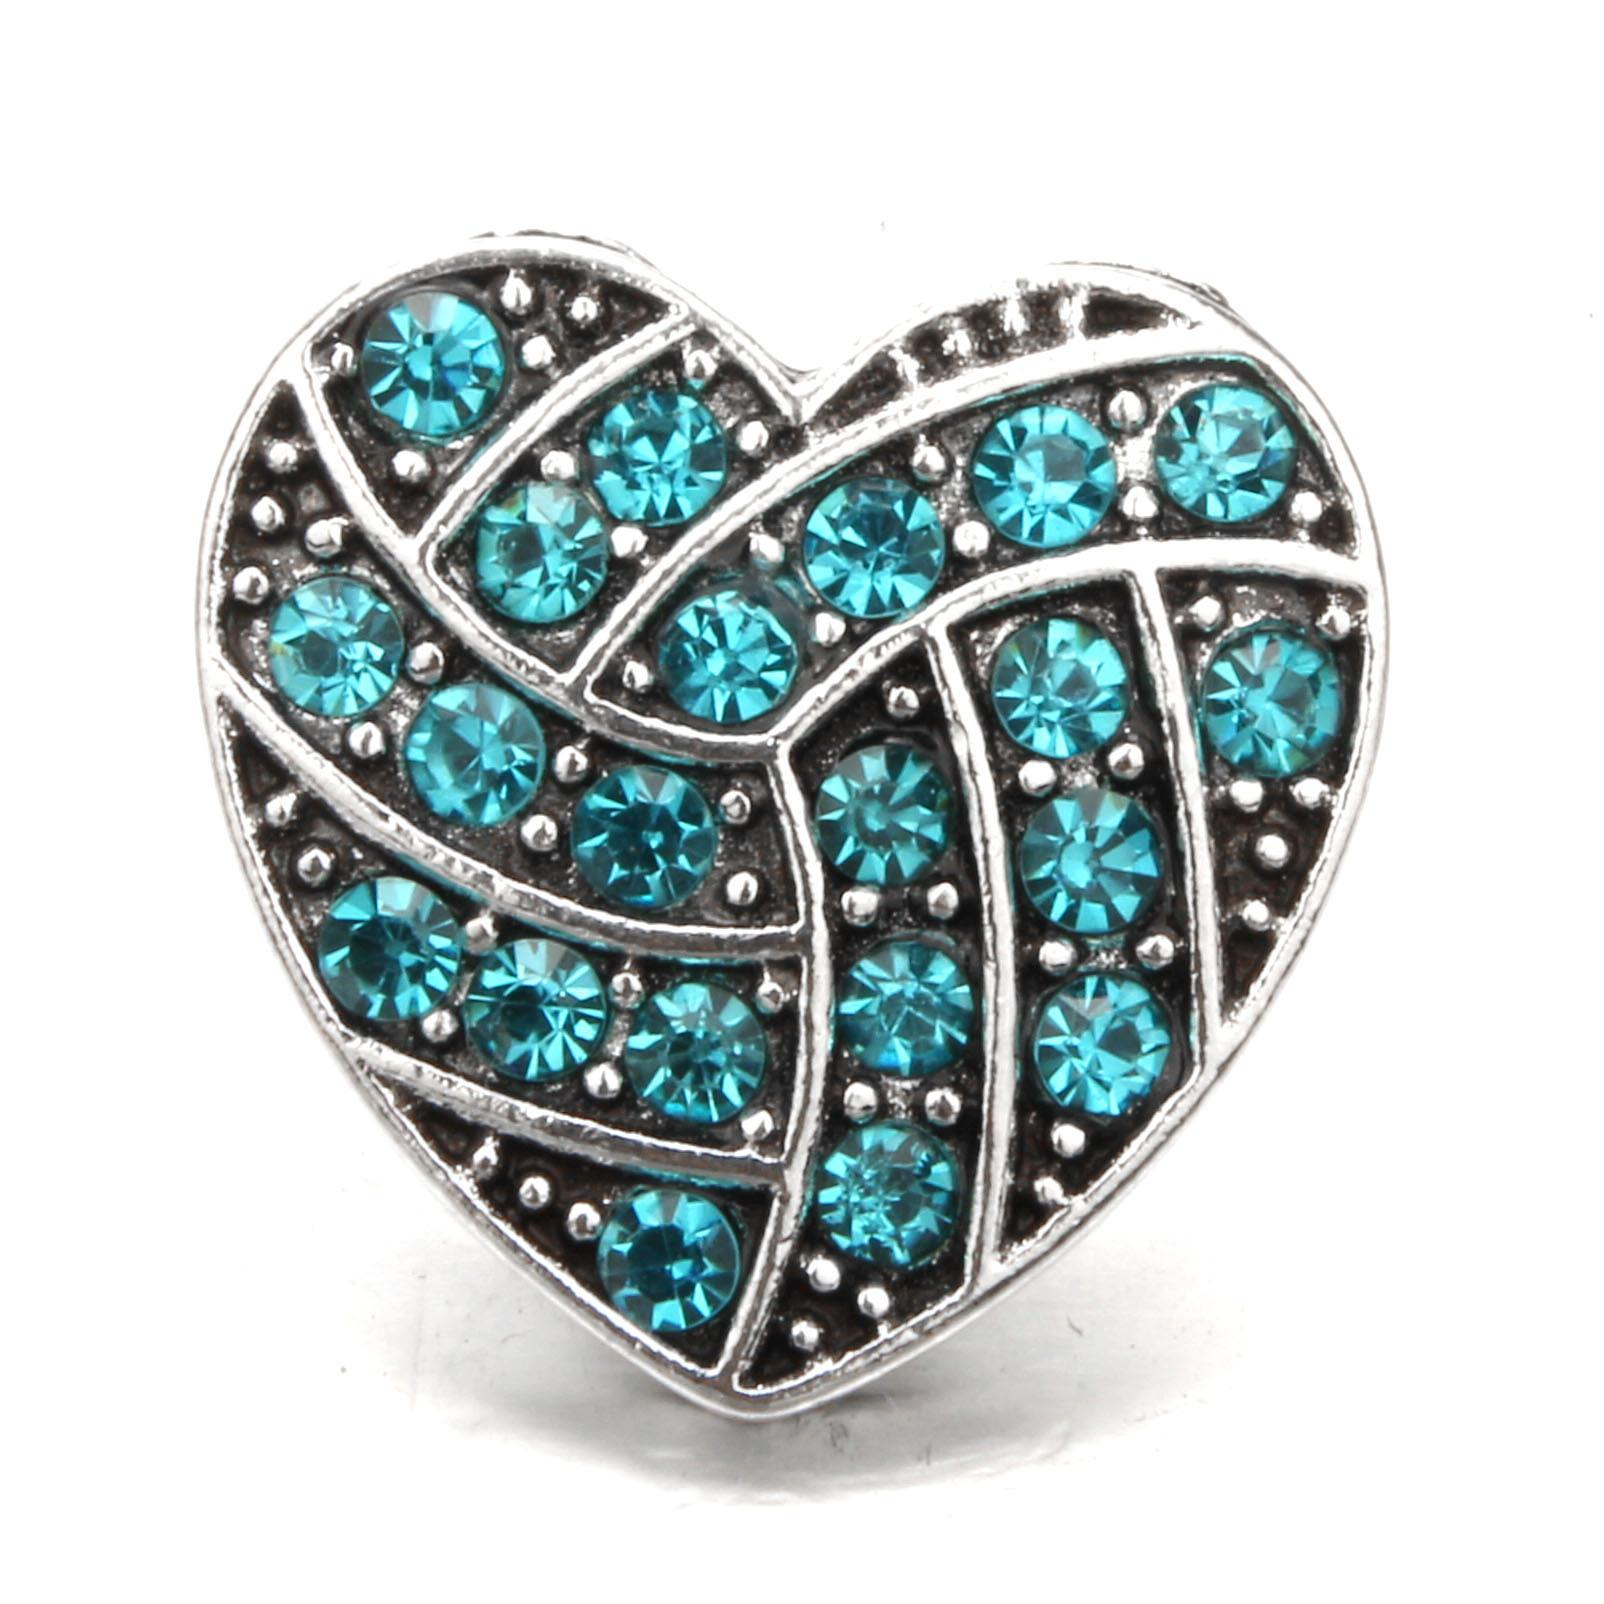 Heart shape multi color button antique silver 18mm Soft bag alloy DIY crystal rhinestone alloy snap Noosa style chunks press button jewelry